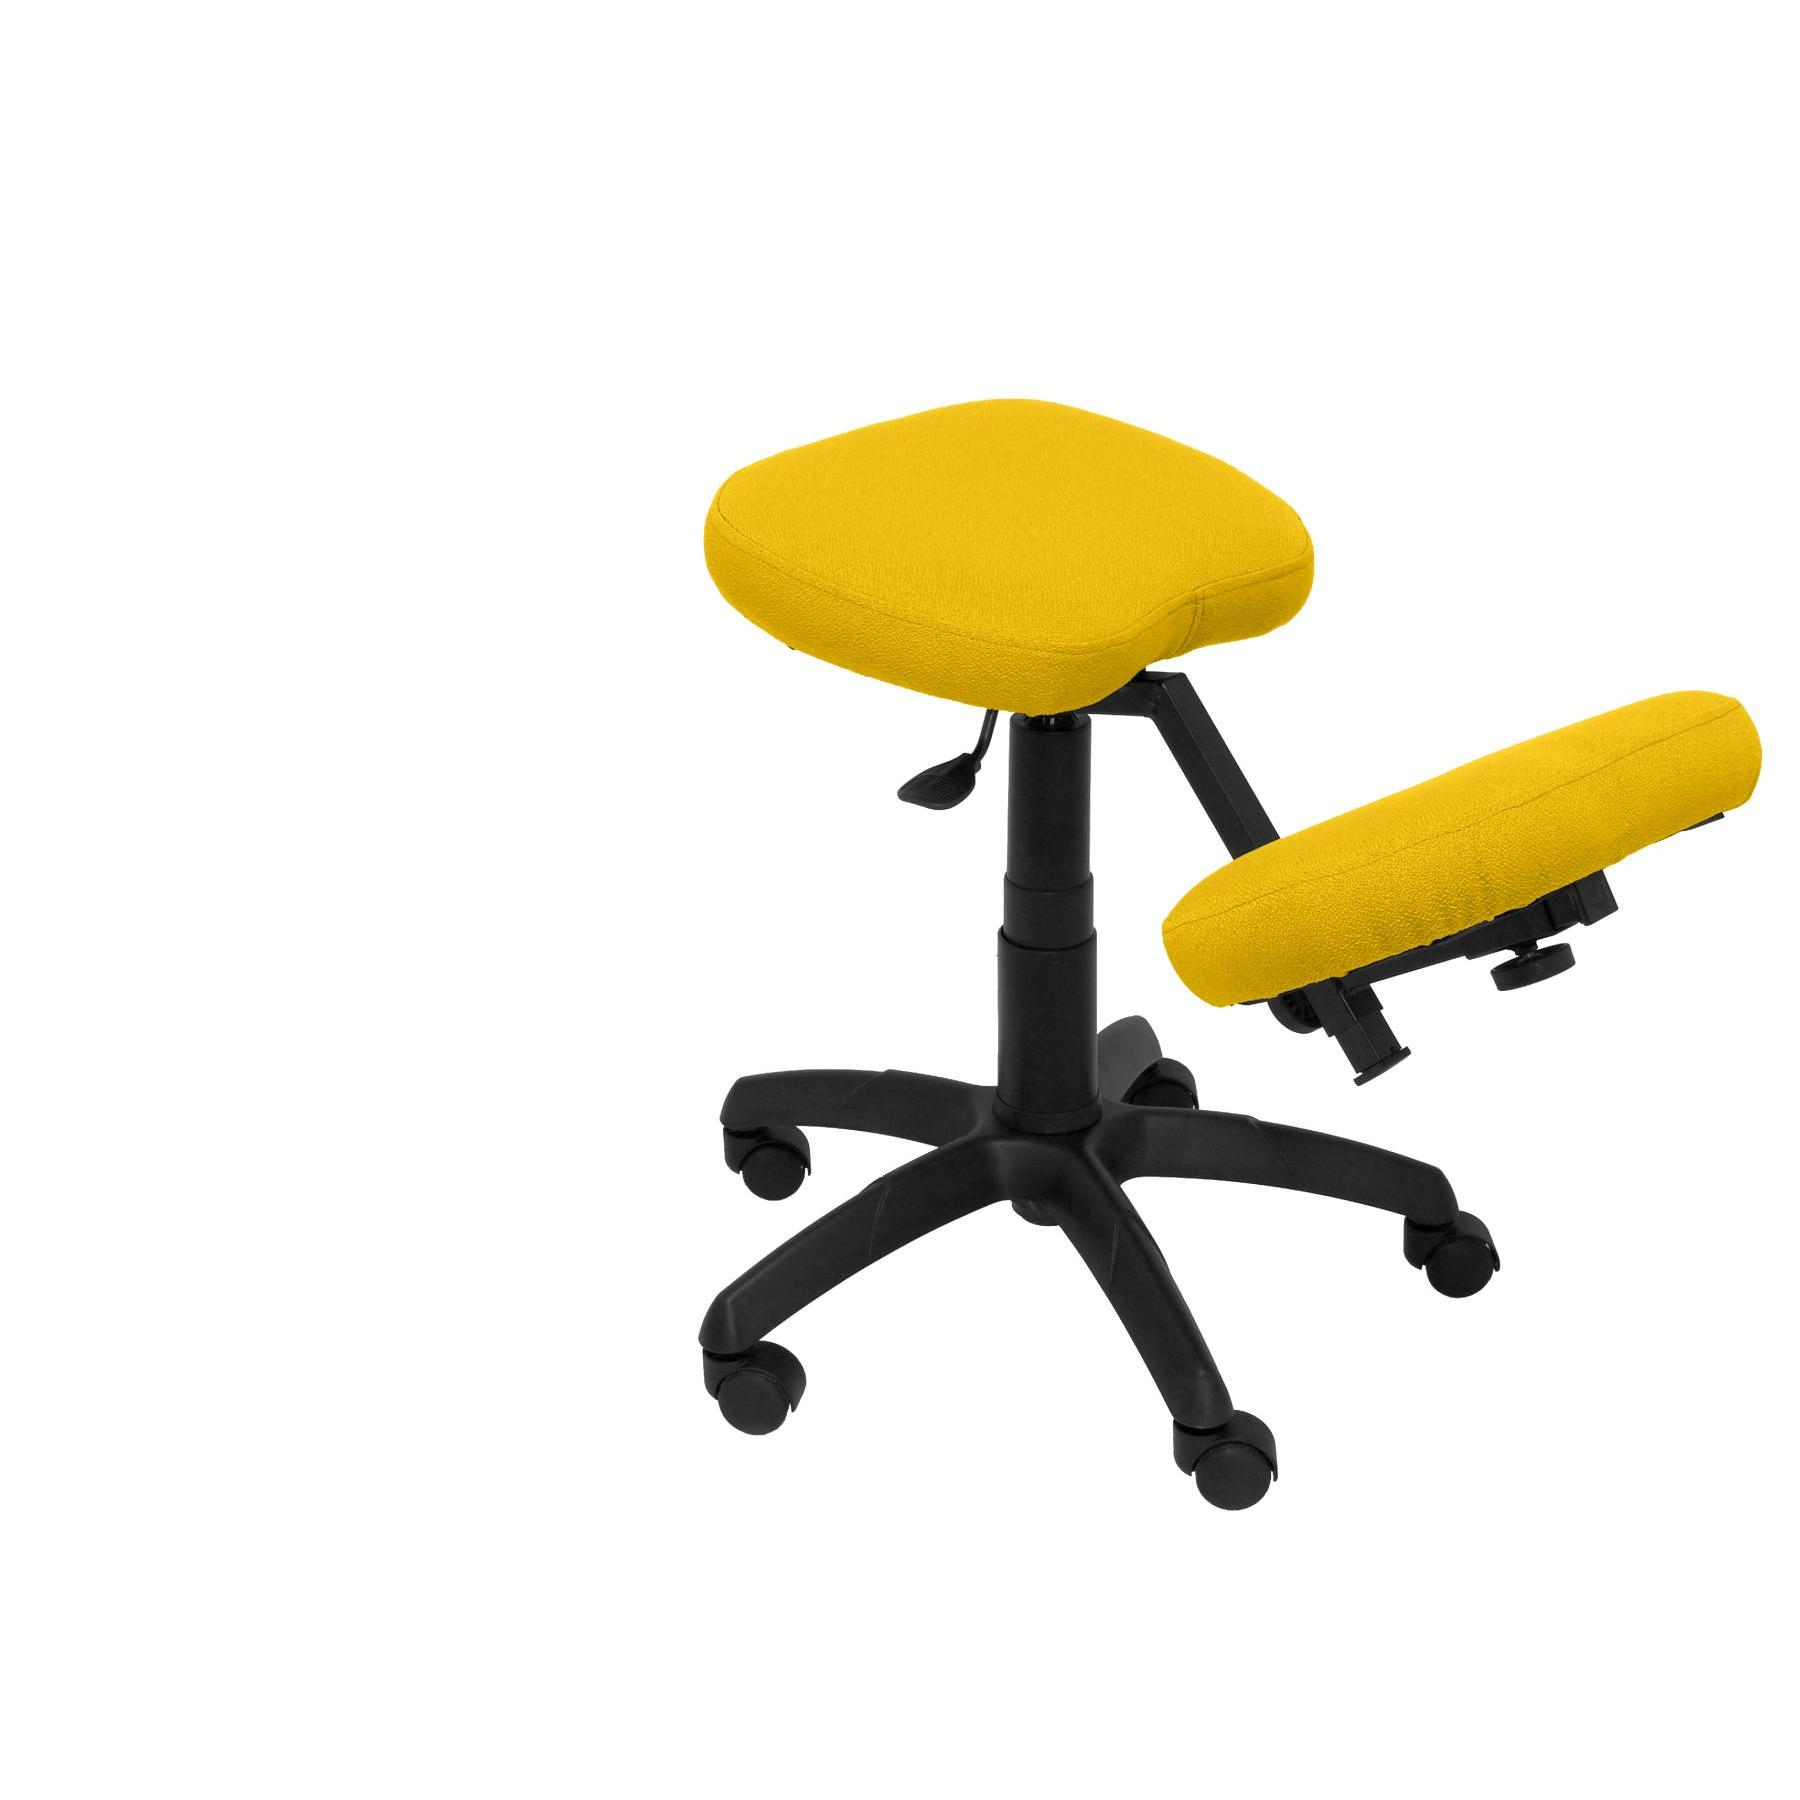 Office's Stool Ergonomic Swivel And Dimmable In High Altitude Up Seat Upholstered In BALI Tissue Color Yellow (RODILLE